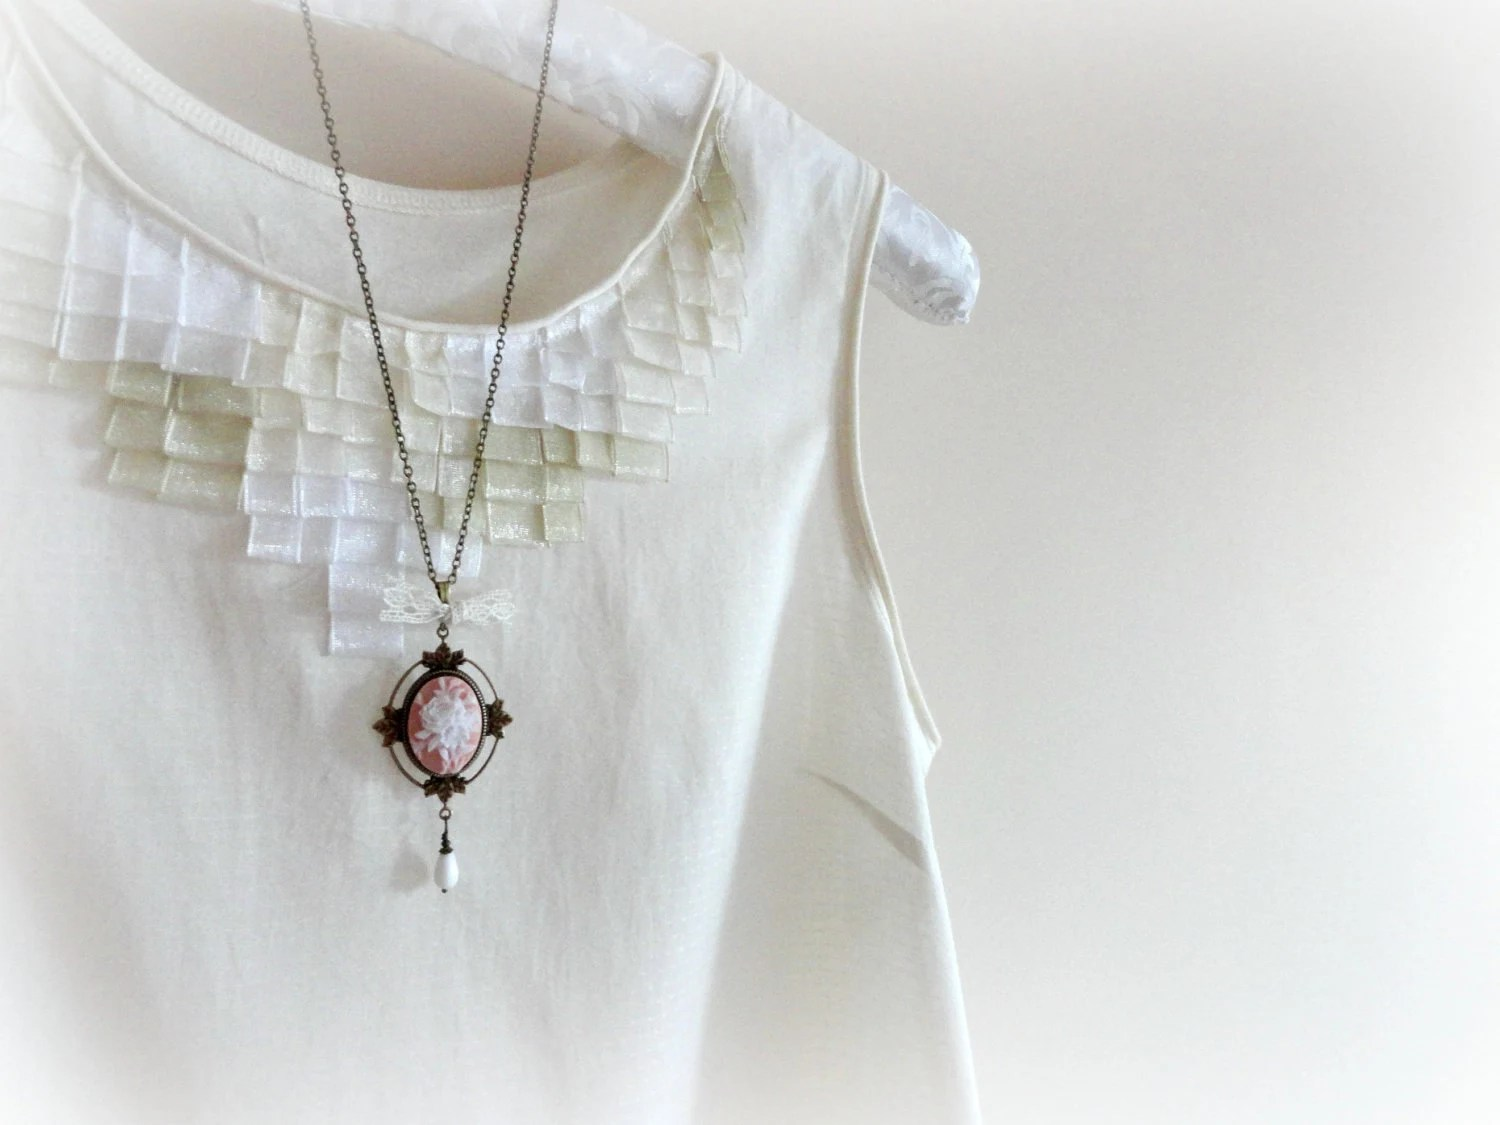 Mosqueta rose -Romantic Necklace.Soft pink and white resin flower cameo,leaves brass setting,lace bow,glass drop. gift for her - GBILOBA